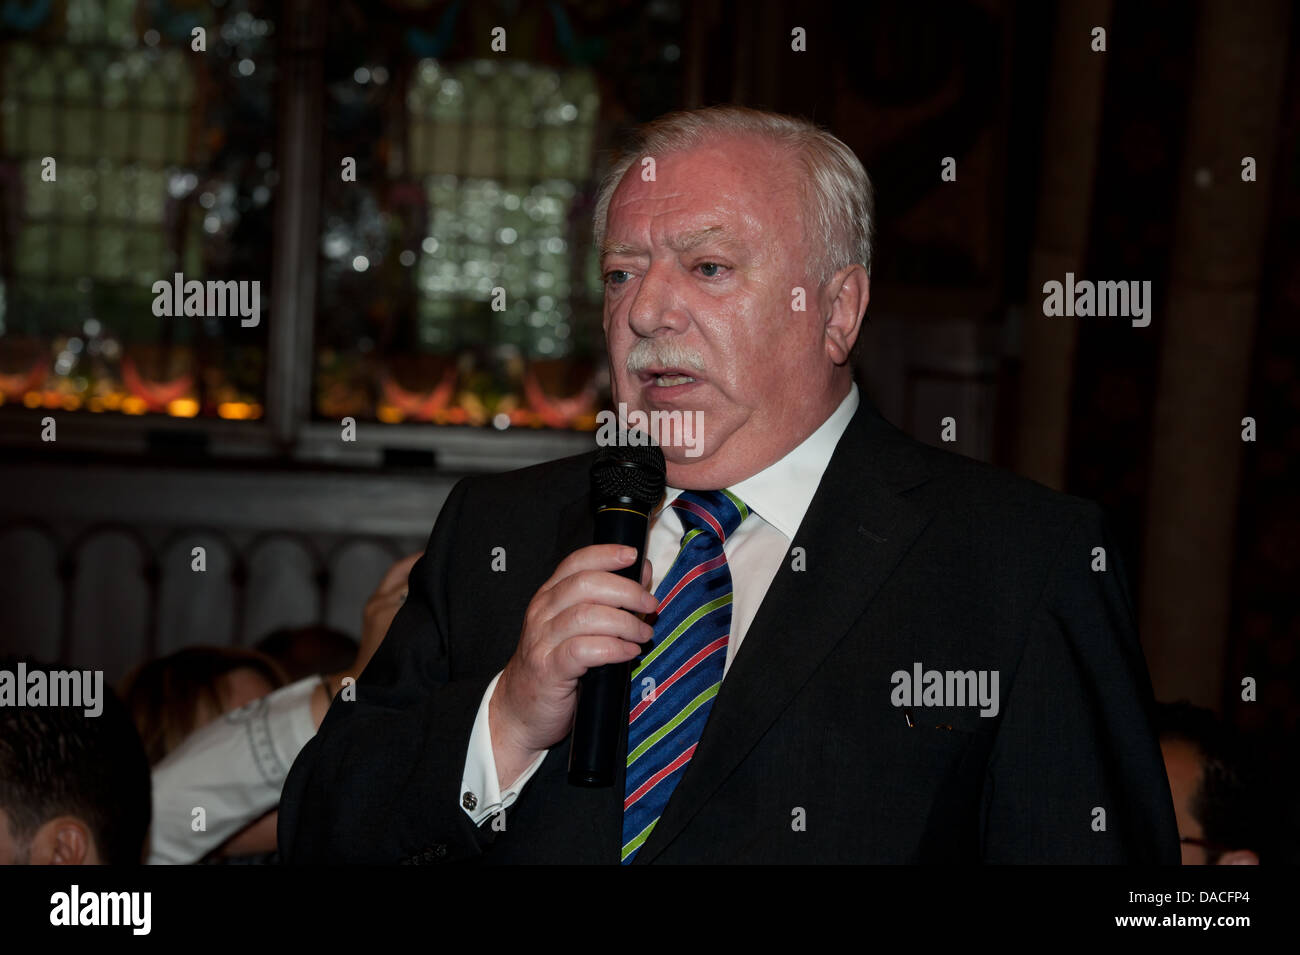 Dr. Michael Häupl, Mayor and Governor of Vienna speaking in presence of the Muslim Community. - Stock Image